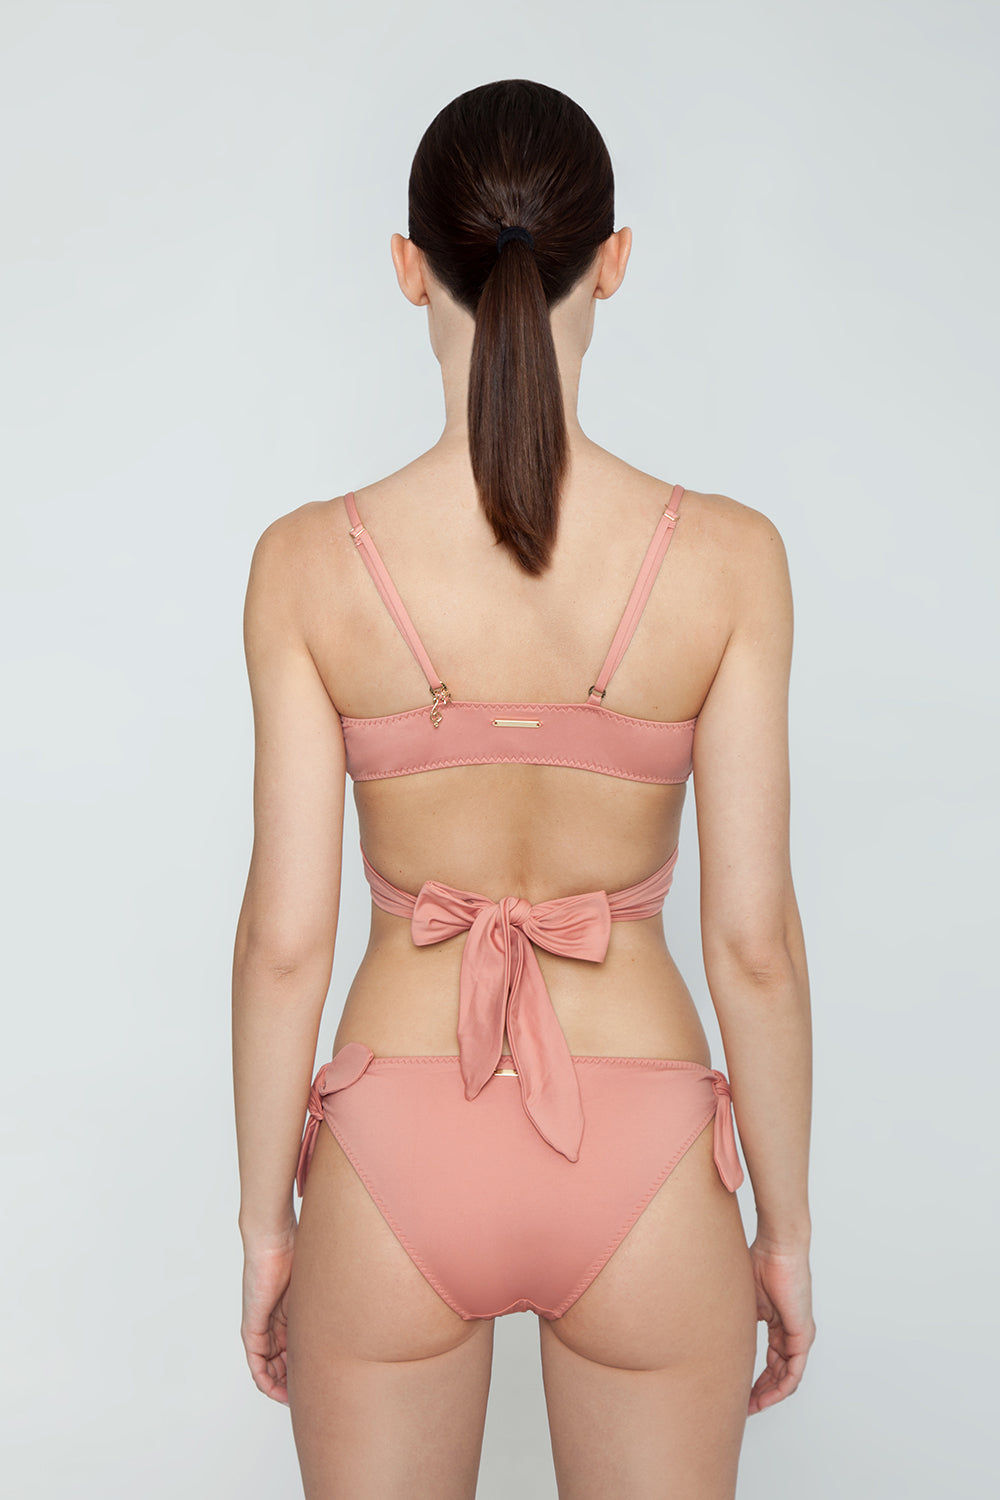 STELLA MCCARTNEY Classic Tie Side Bikini Bottom - Antique Rose Pink Bikini Bottom | Antique Rose Pink| Stella McCartney Classic Tie Side Bikini Bottom - Antique Rose Pink Low rise  Tie side detail  Moderate coverage Back View